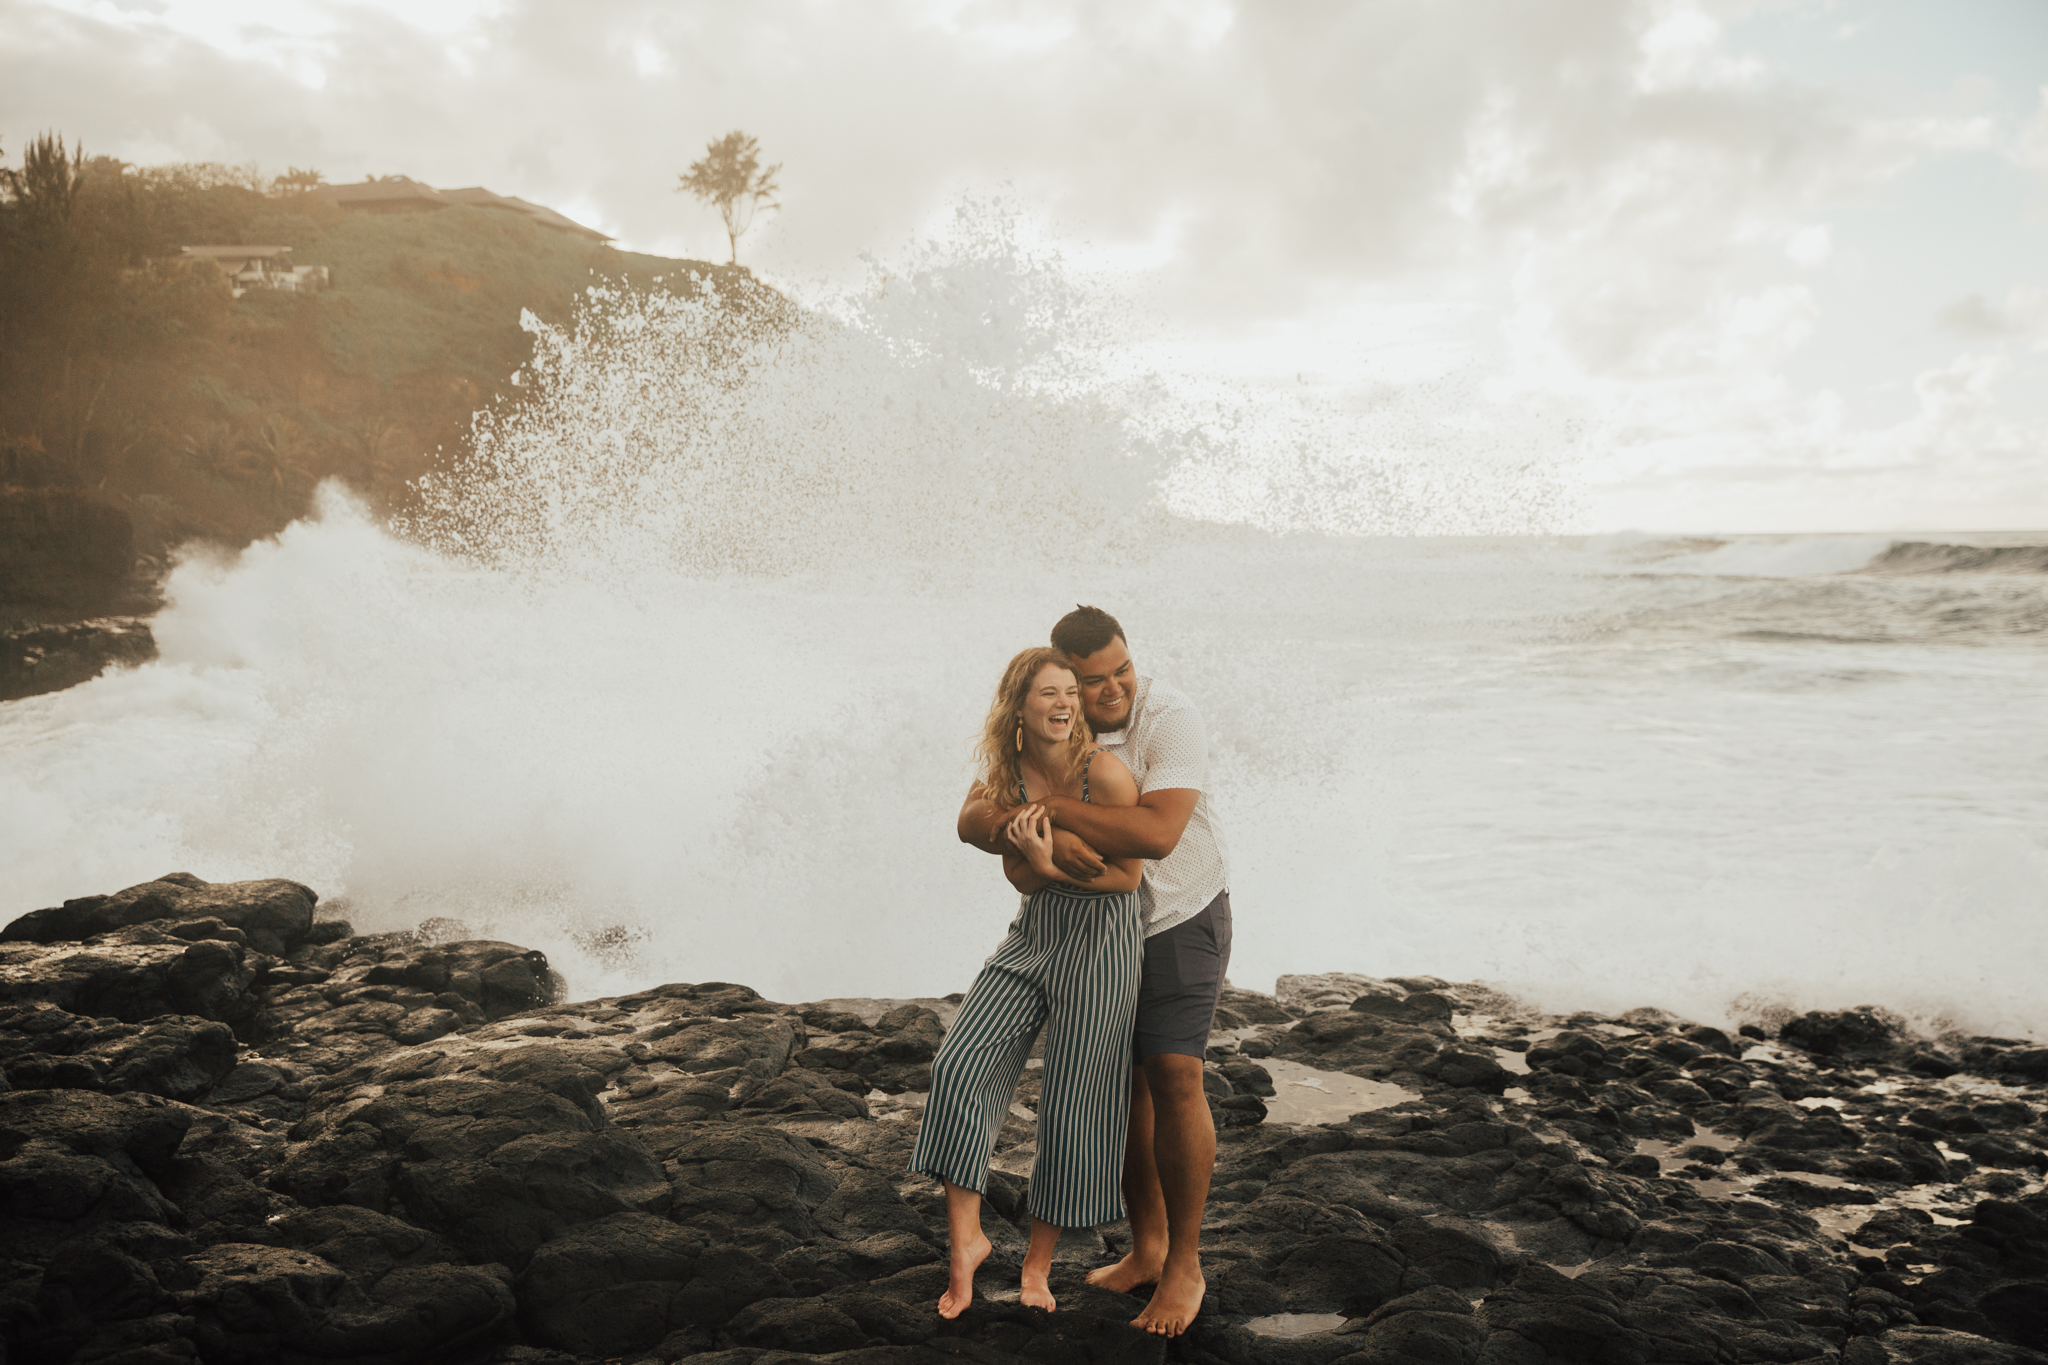 kauai-hawaii-beach-engagement-wedding-photography